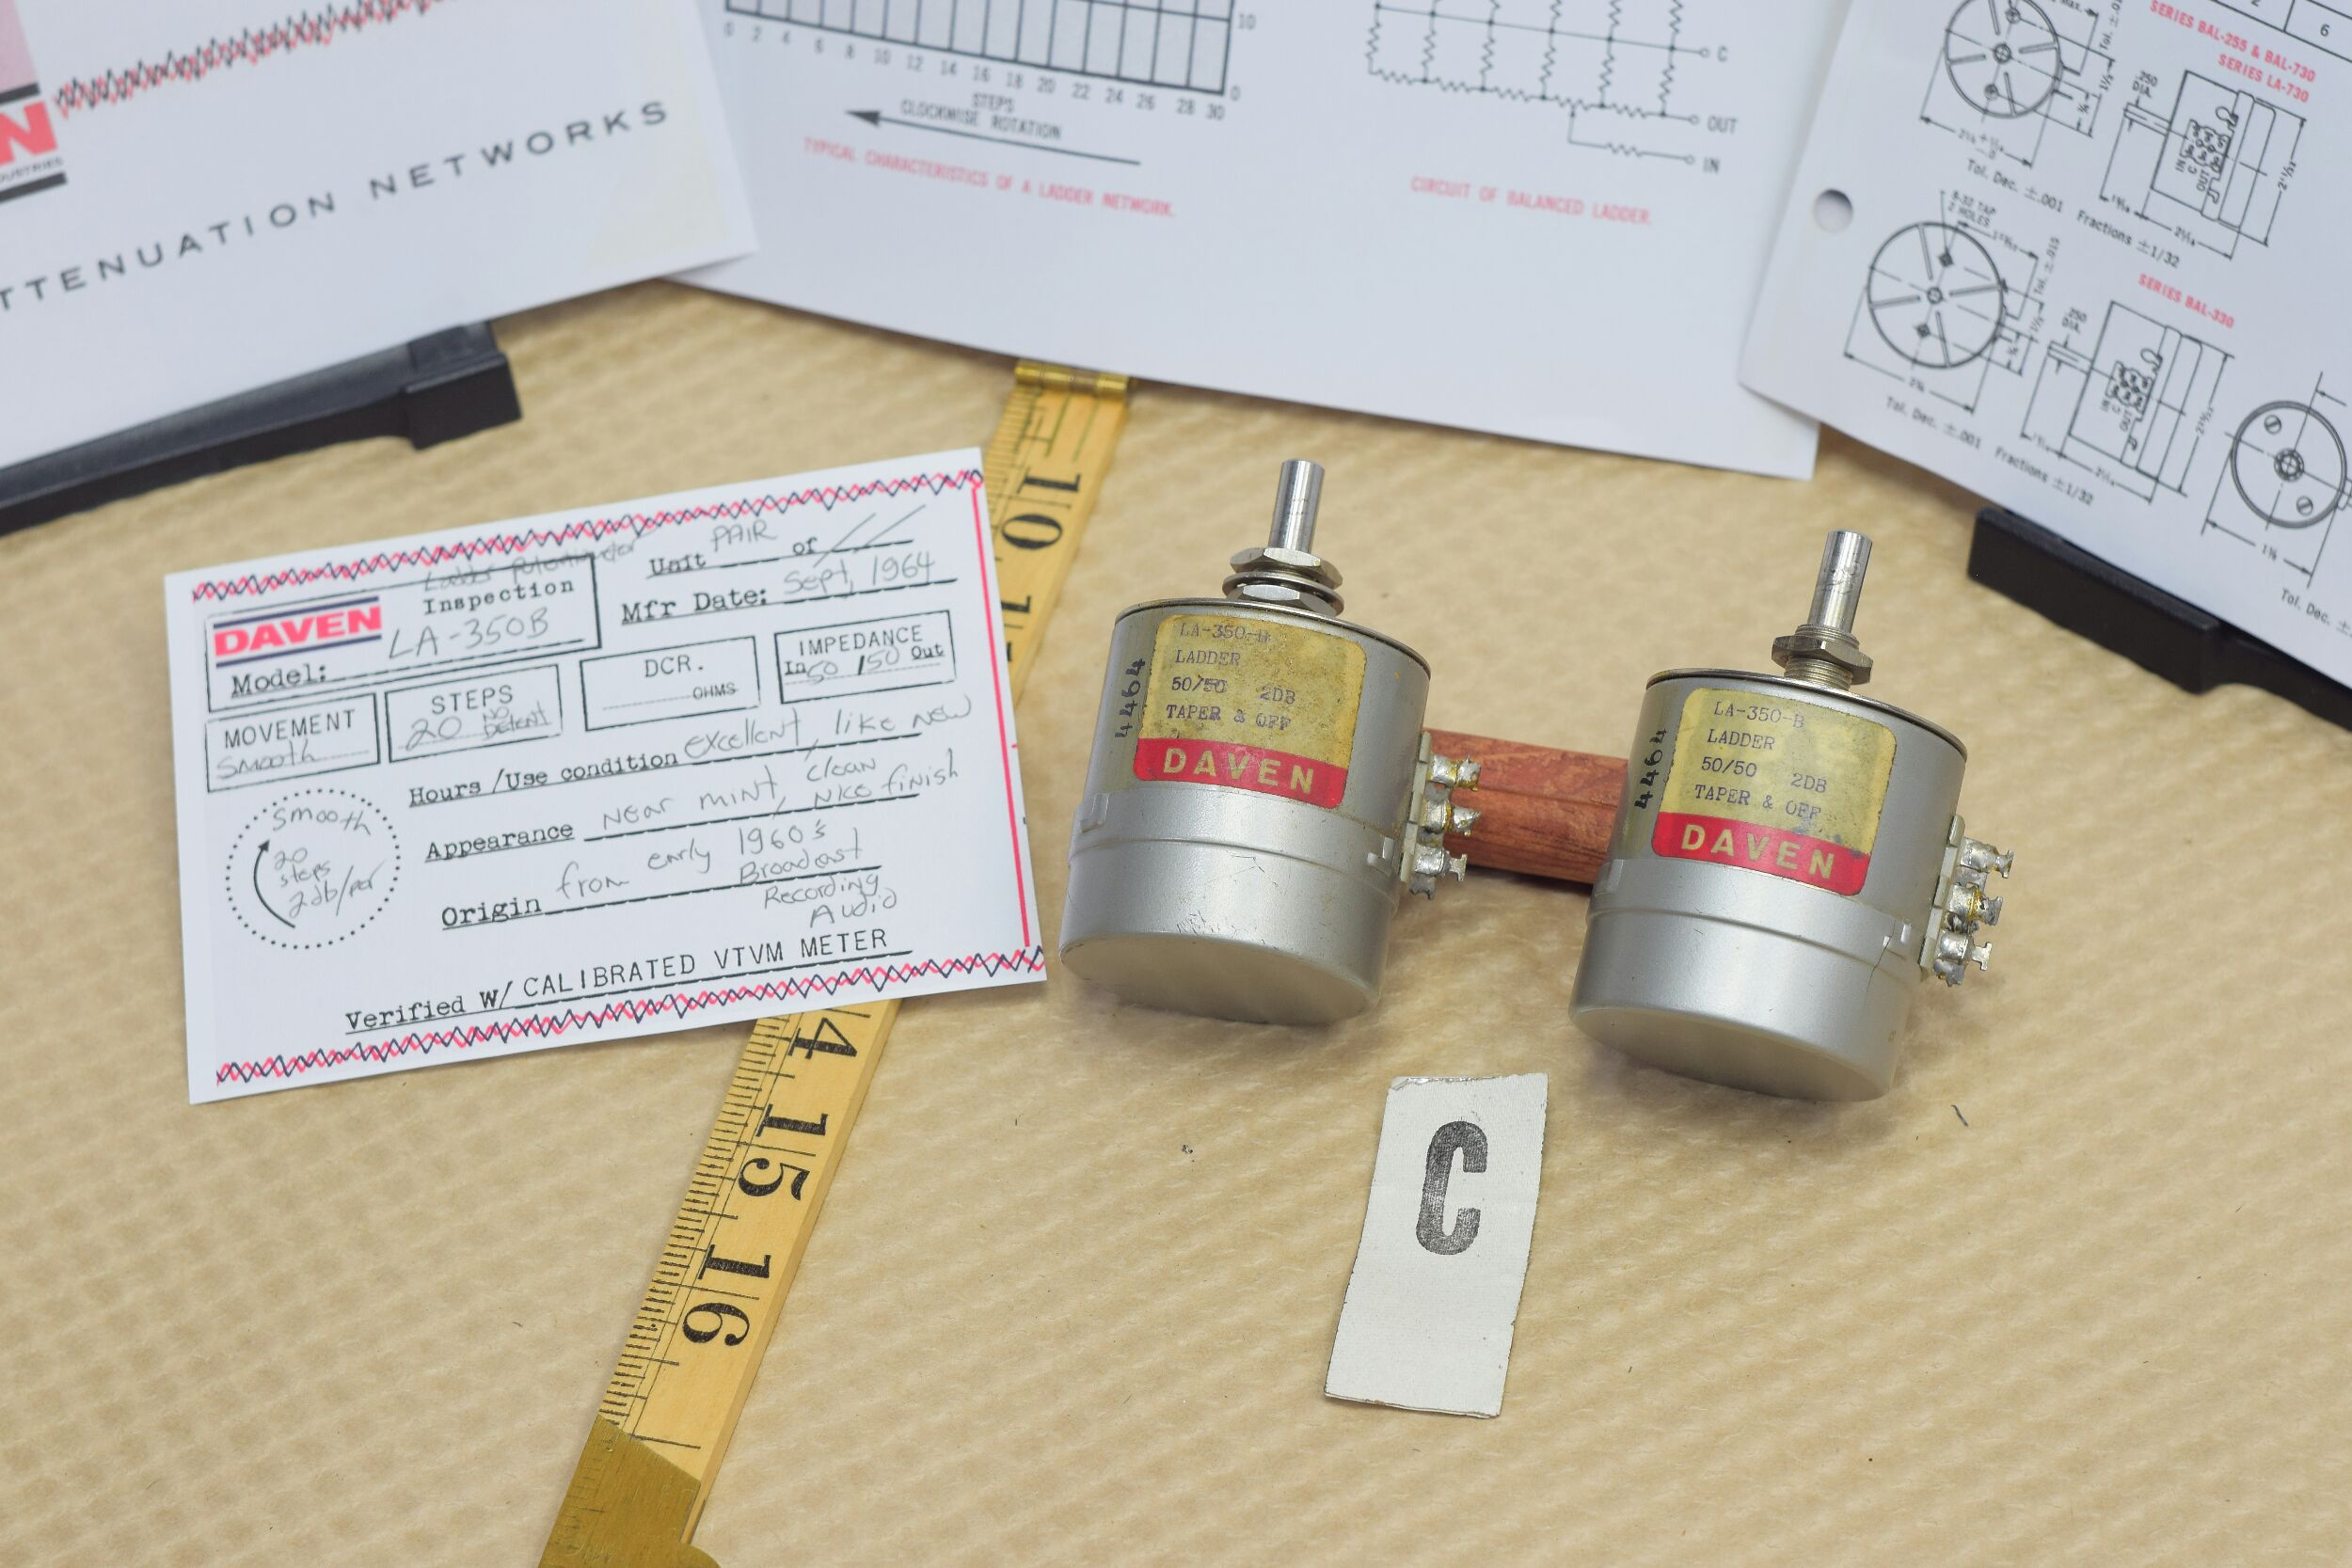 The Daven Company Potentiometers for audio attenuation from